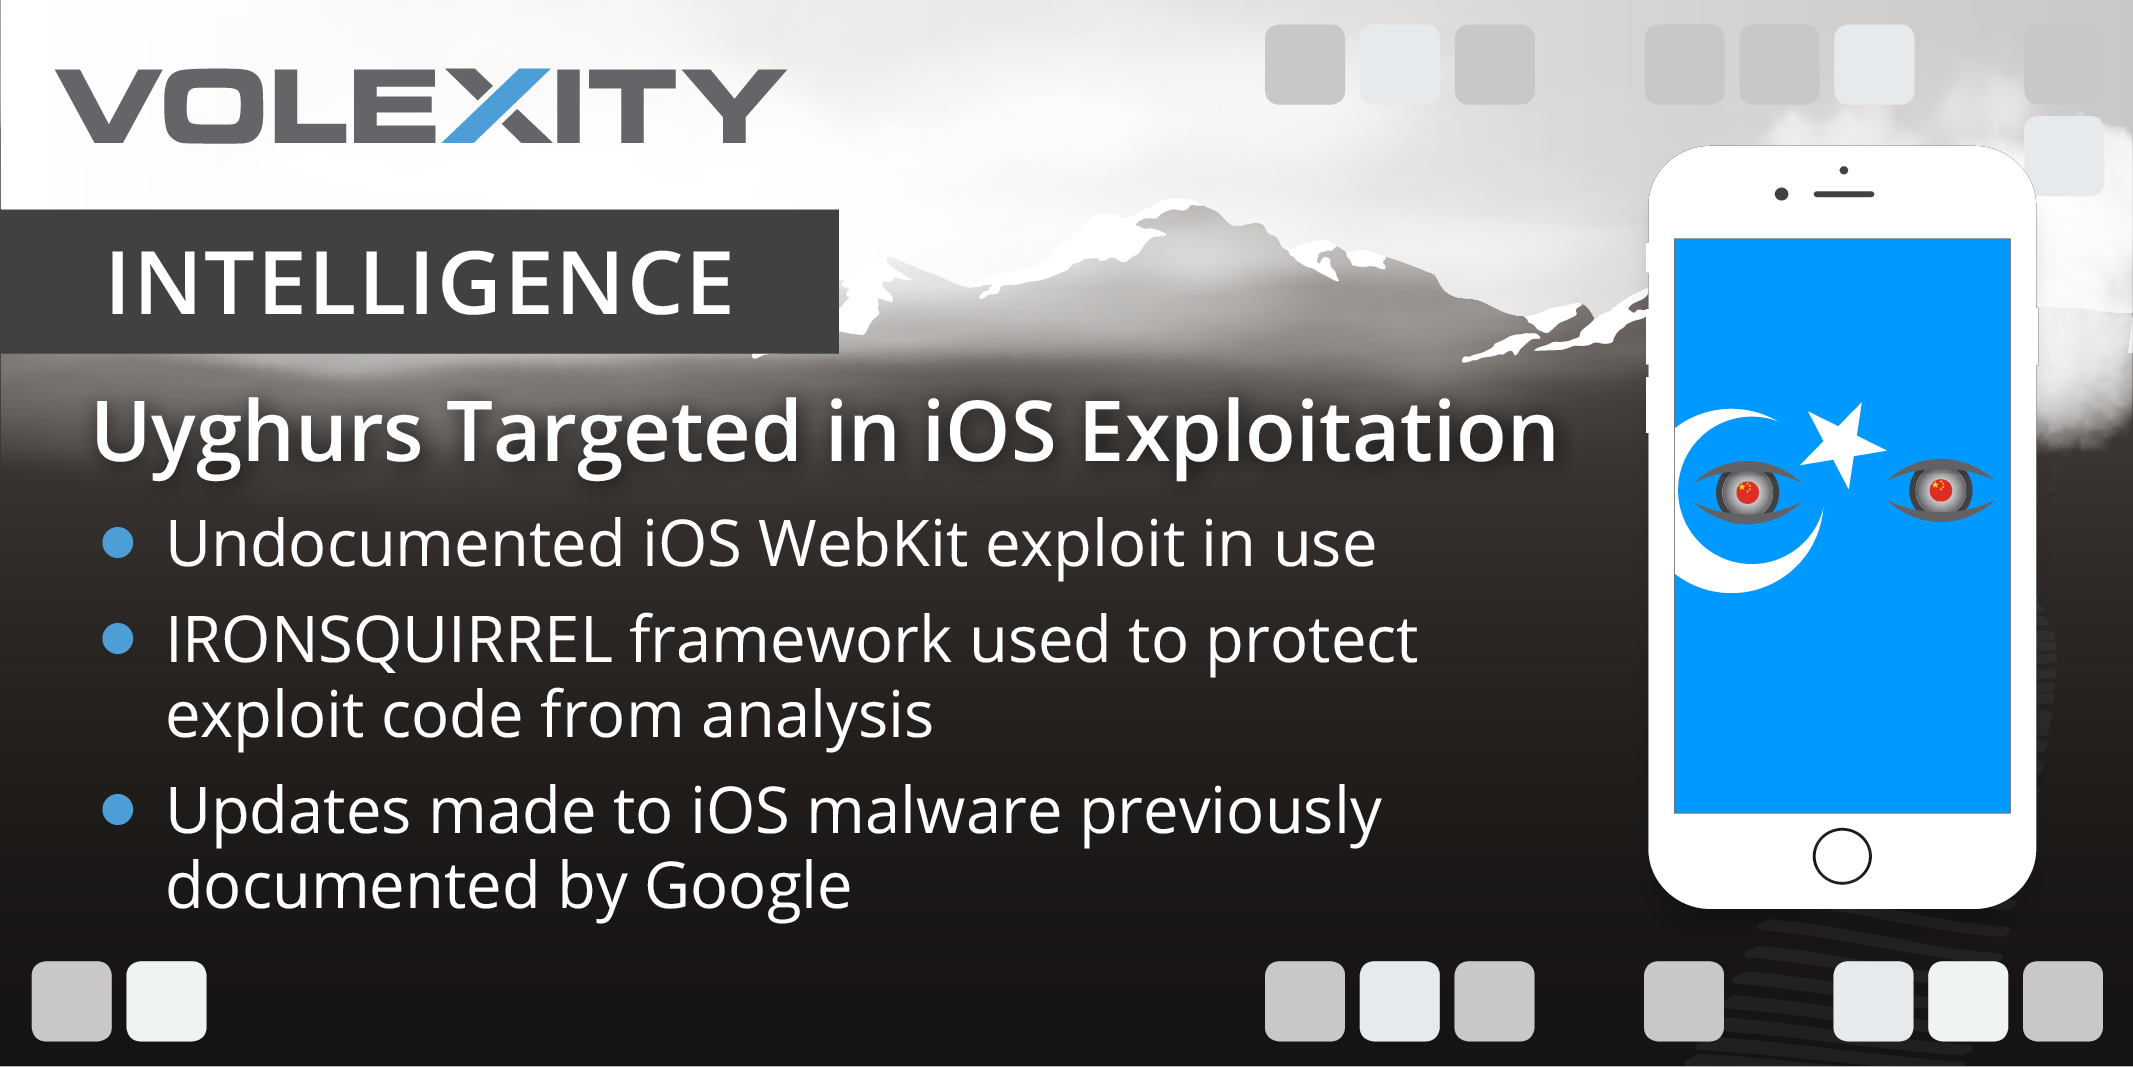 Evil Eye Threat Actor Resurfaces with iOS Exploit and Updated Implant